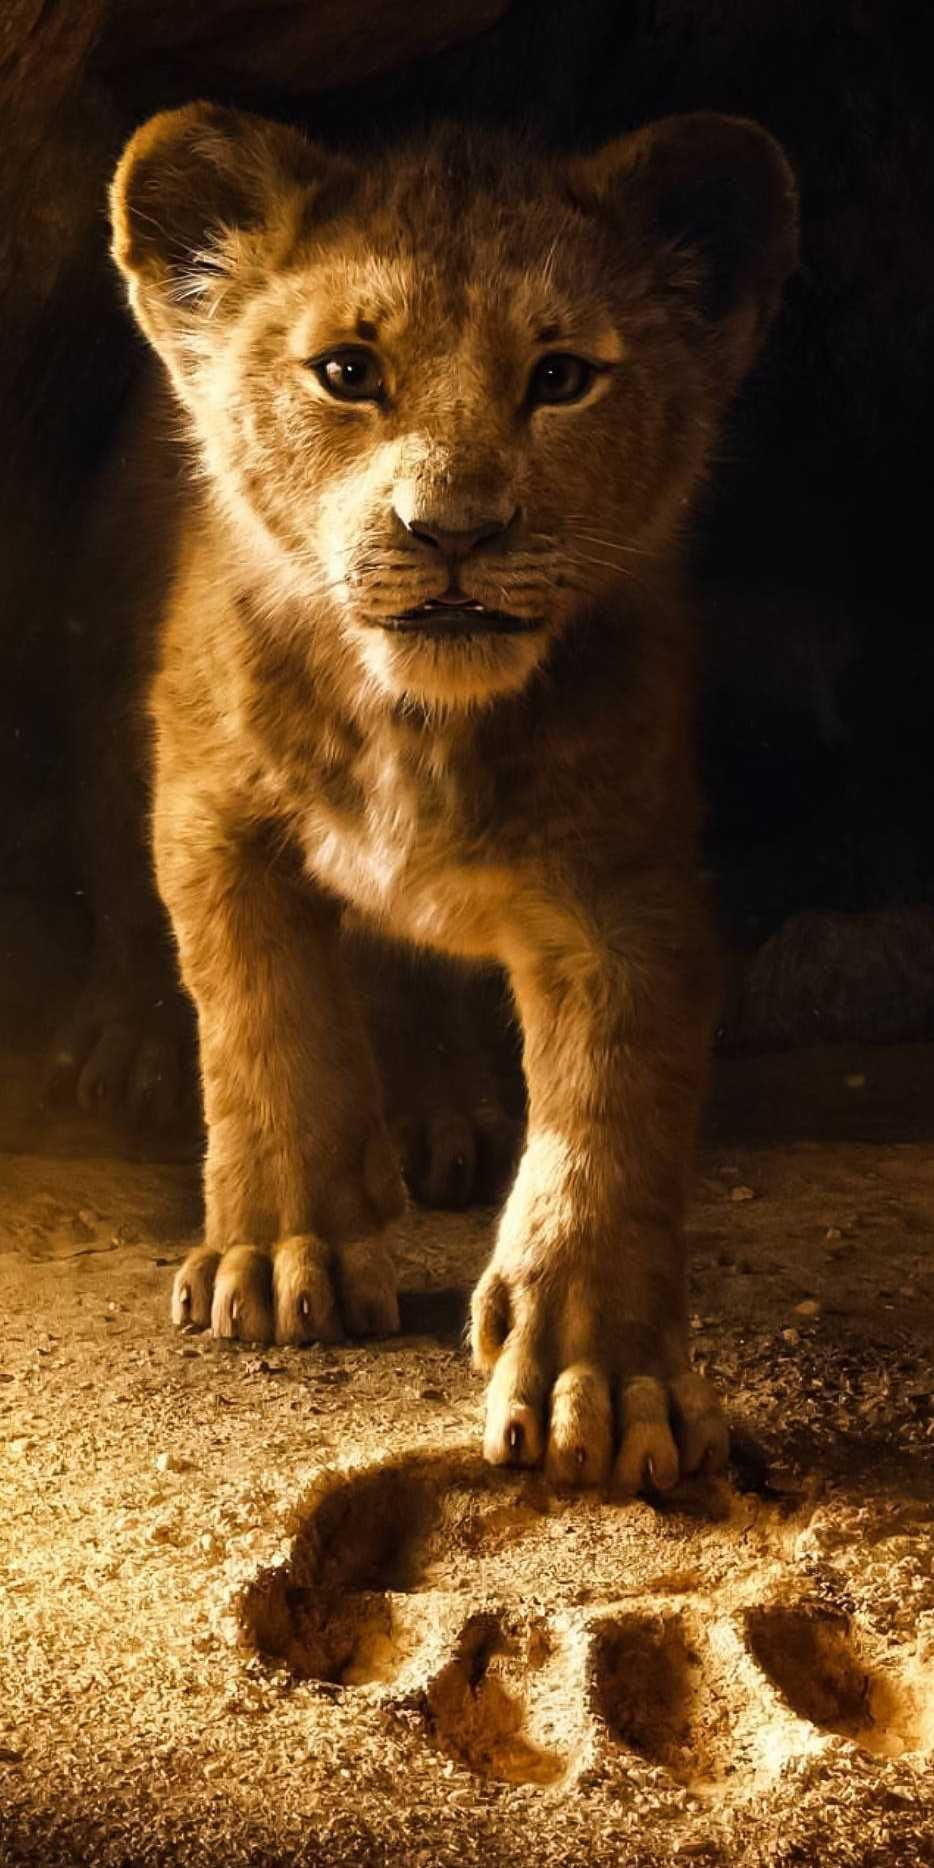 The Lion King Iphone Wallpaper - Lion King 2019 Wallpaper Iphone , HD Wallpaper & Backgrounds